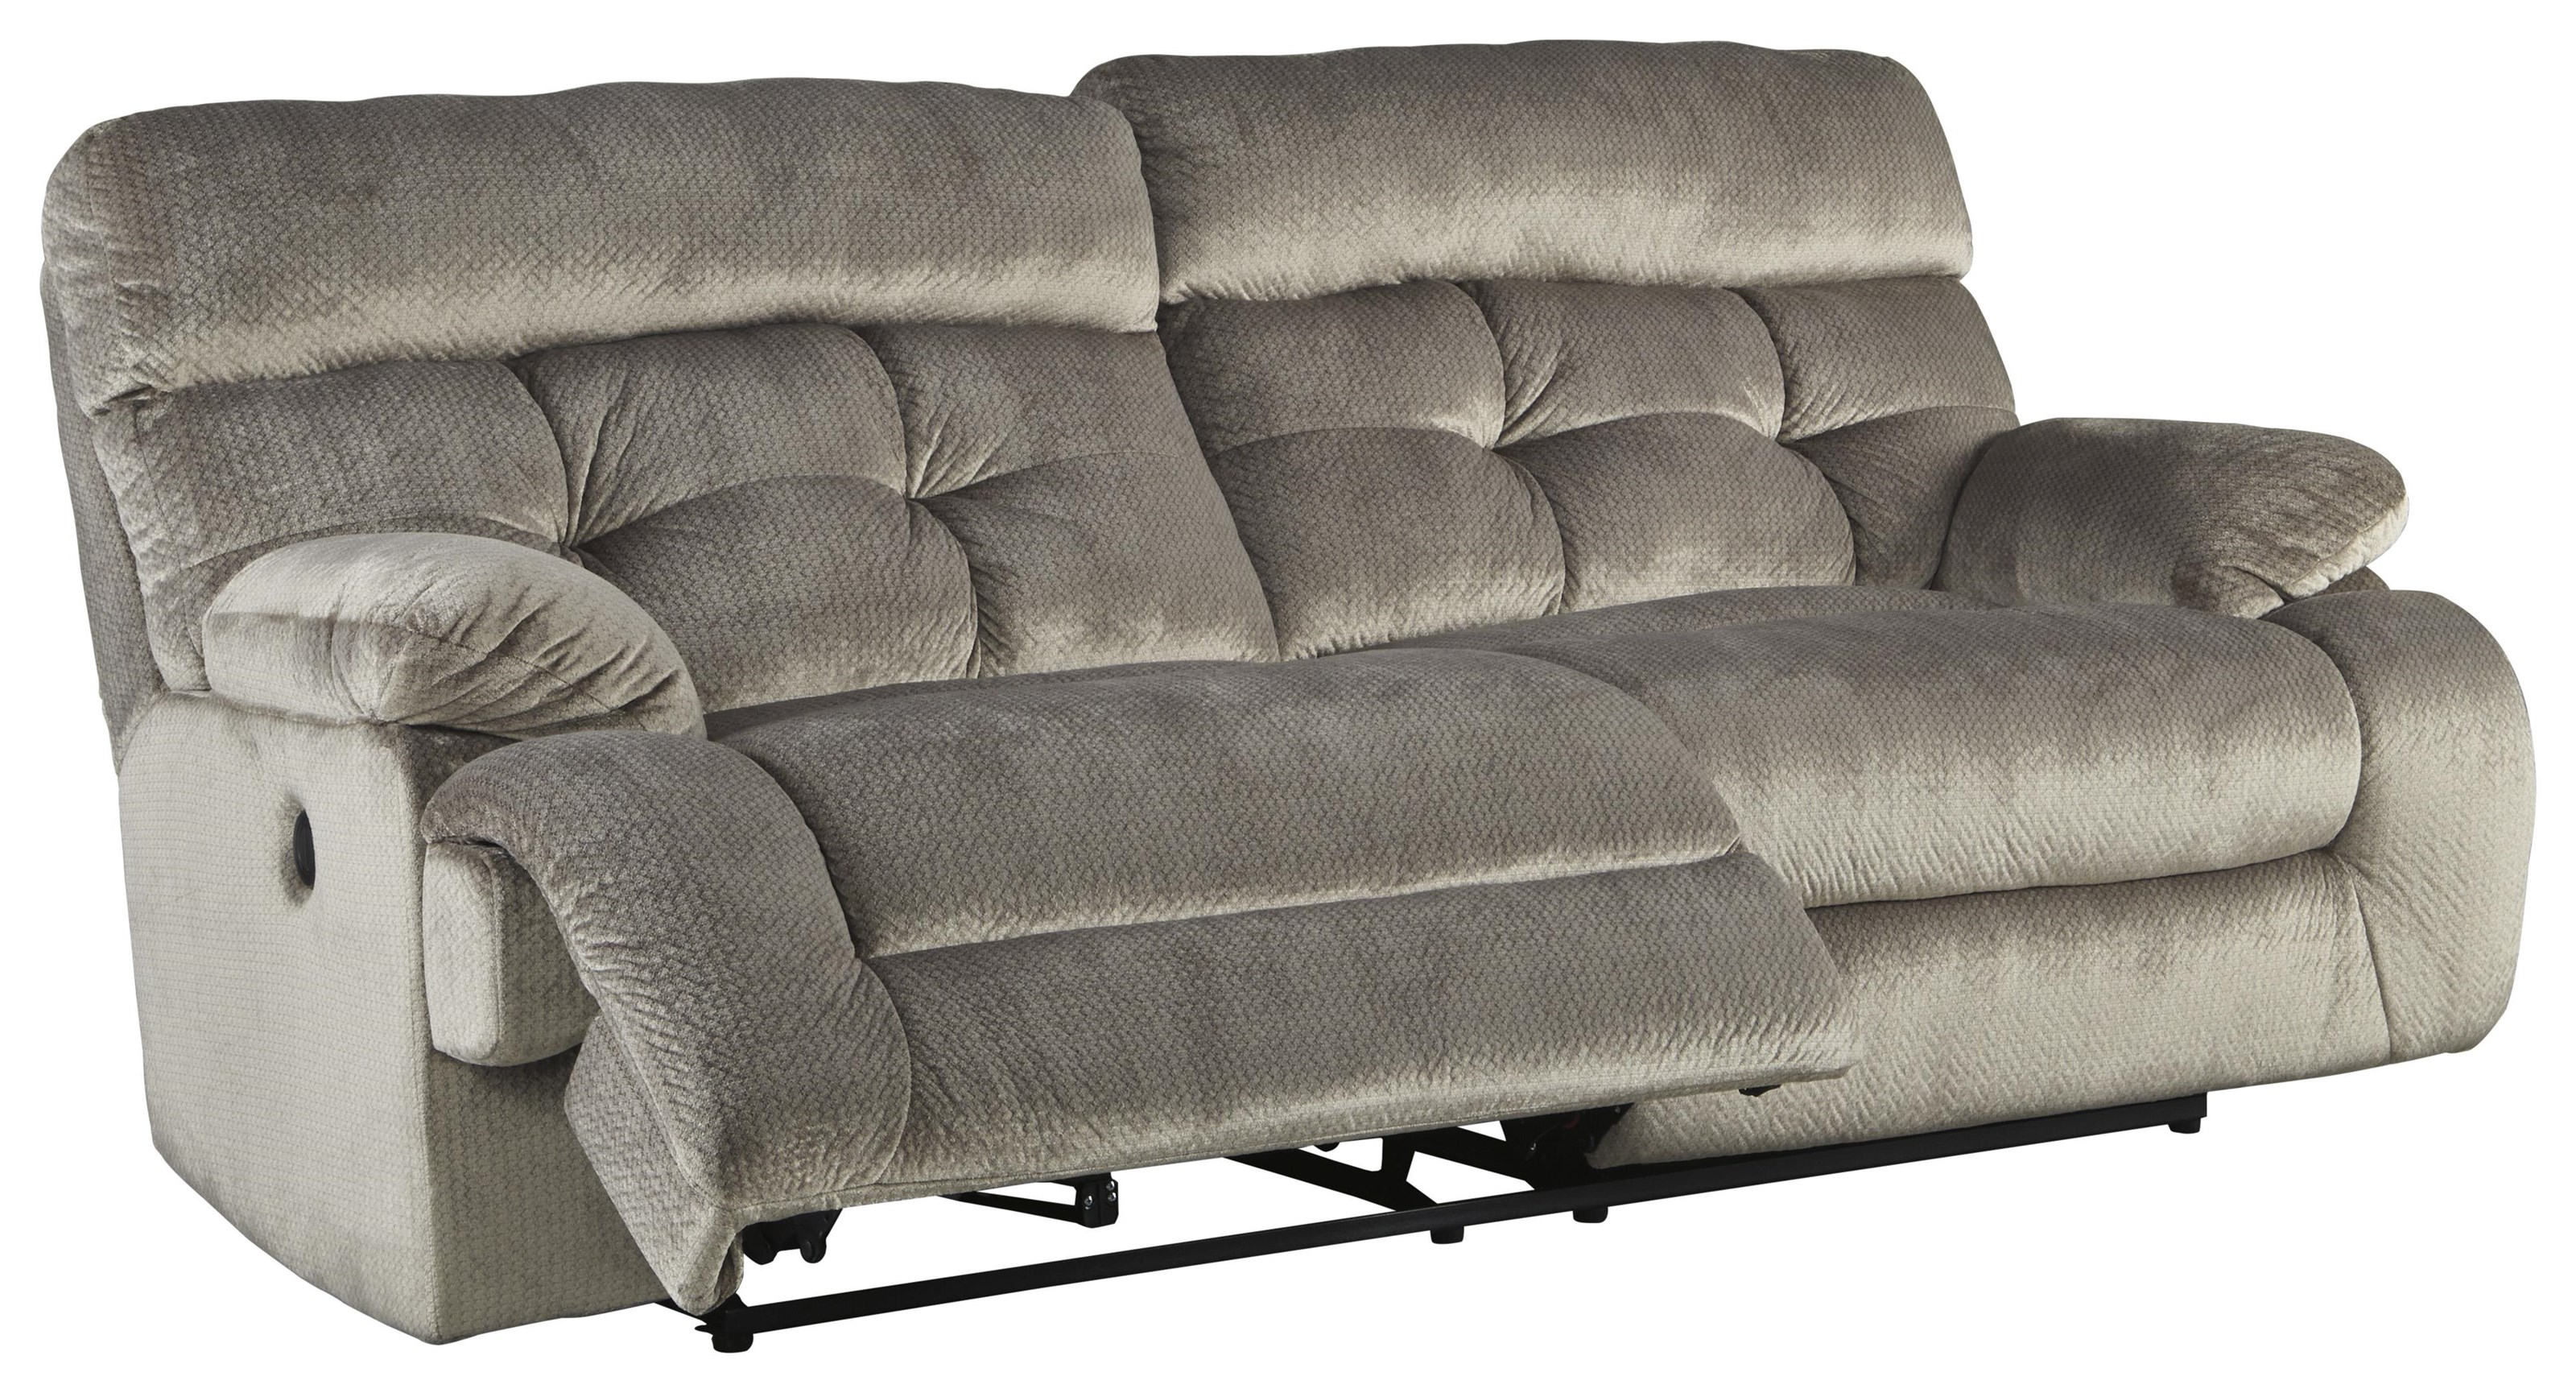 Signature Design By Ashley 17701 1770147 Reclining Power Sofa Furniture And Appliancemart Reclining Sofas